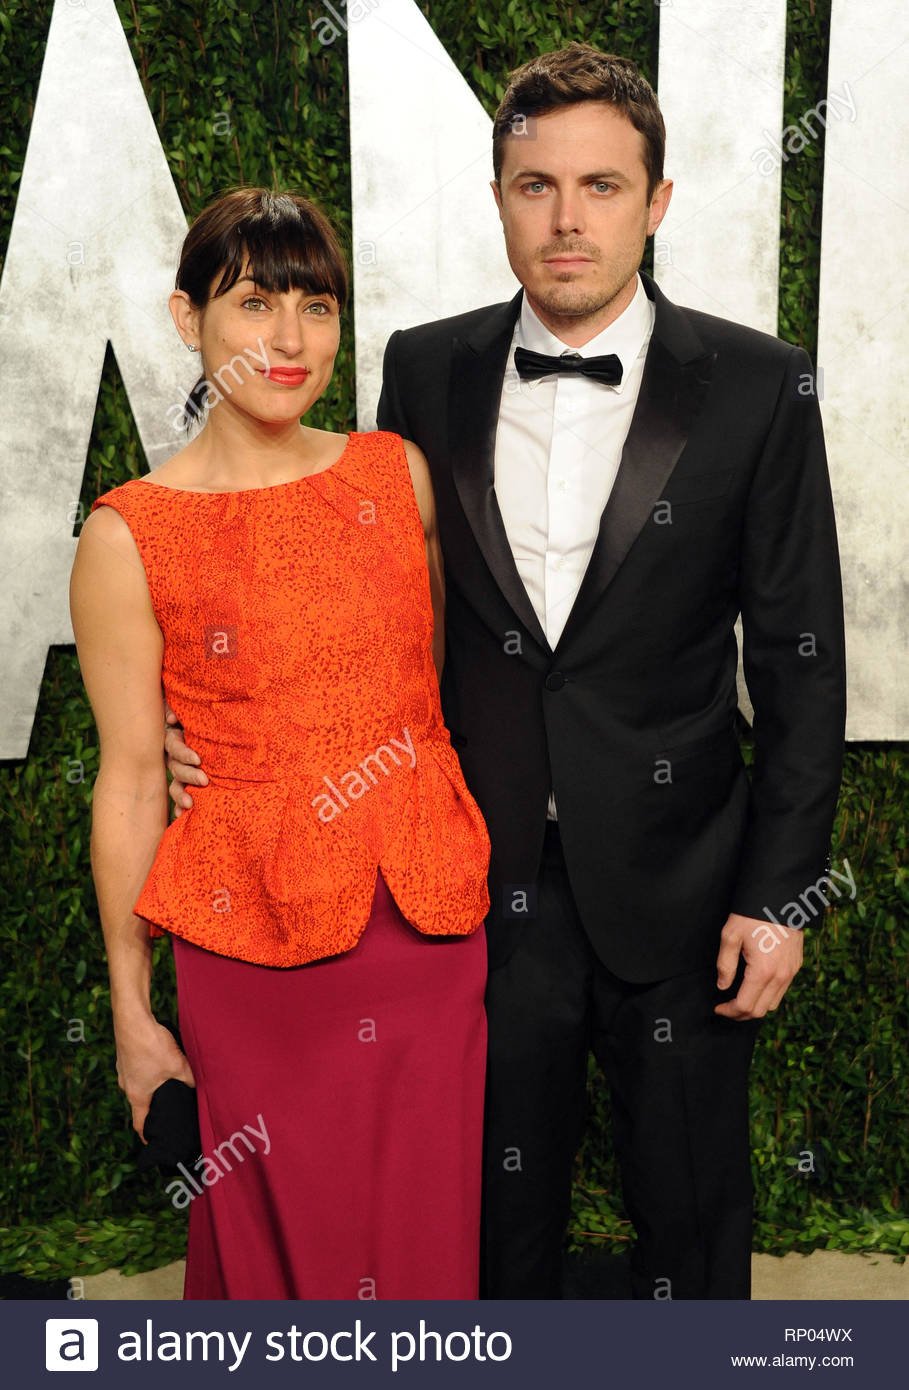 [USA ONLY] Los Angeles, CA - Casey Affleck and Summer Phoenix attend the 2013 Vanity Fair Oscar Party held at the Sunset Tower hotel in Los Angeles.  AKM-GSI          February 24, 2013  [USA ONLY]  To License These Photos, Please Contact :  Steve Ginsburg (310) 505-8447 (323) 4239397 steve@ginsburgspalyinc.com sales@ginsburgspalyinc.com  or  Keith Stockwell (310) 261-8649 (323) 325-8055  keith@ginsburgspalyinc.com ginsburgspalyinc@gmail.com - Stock Image